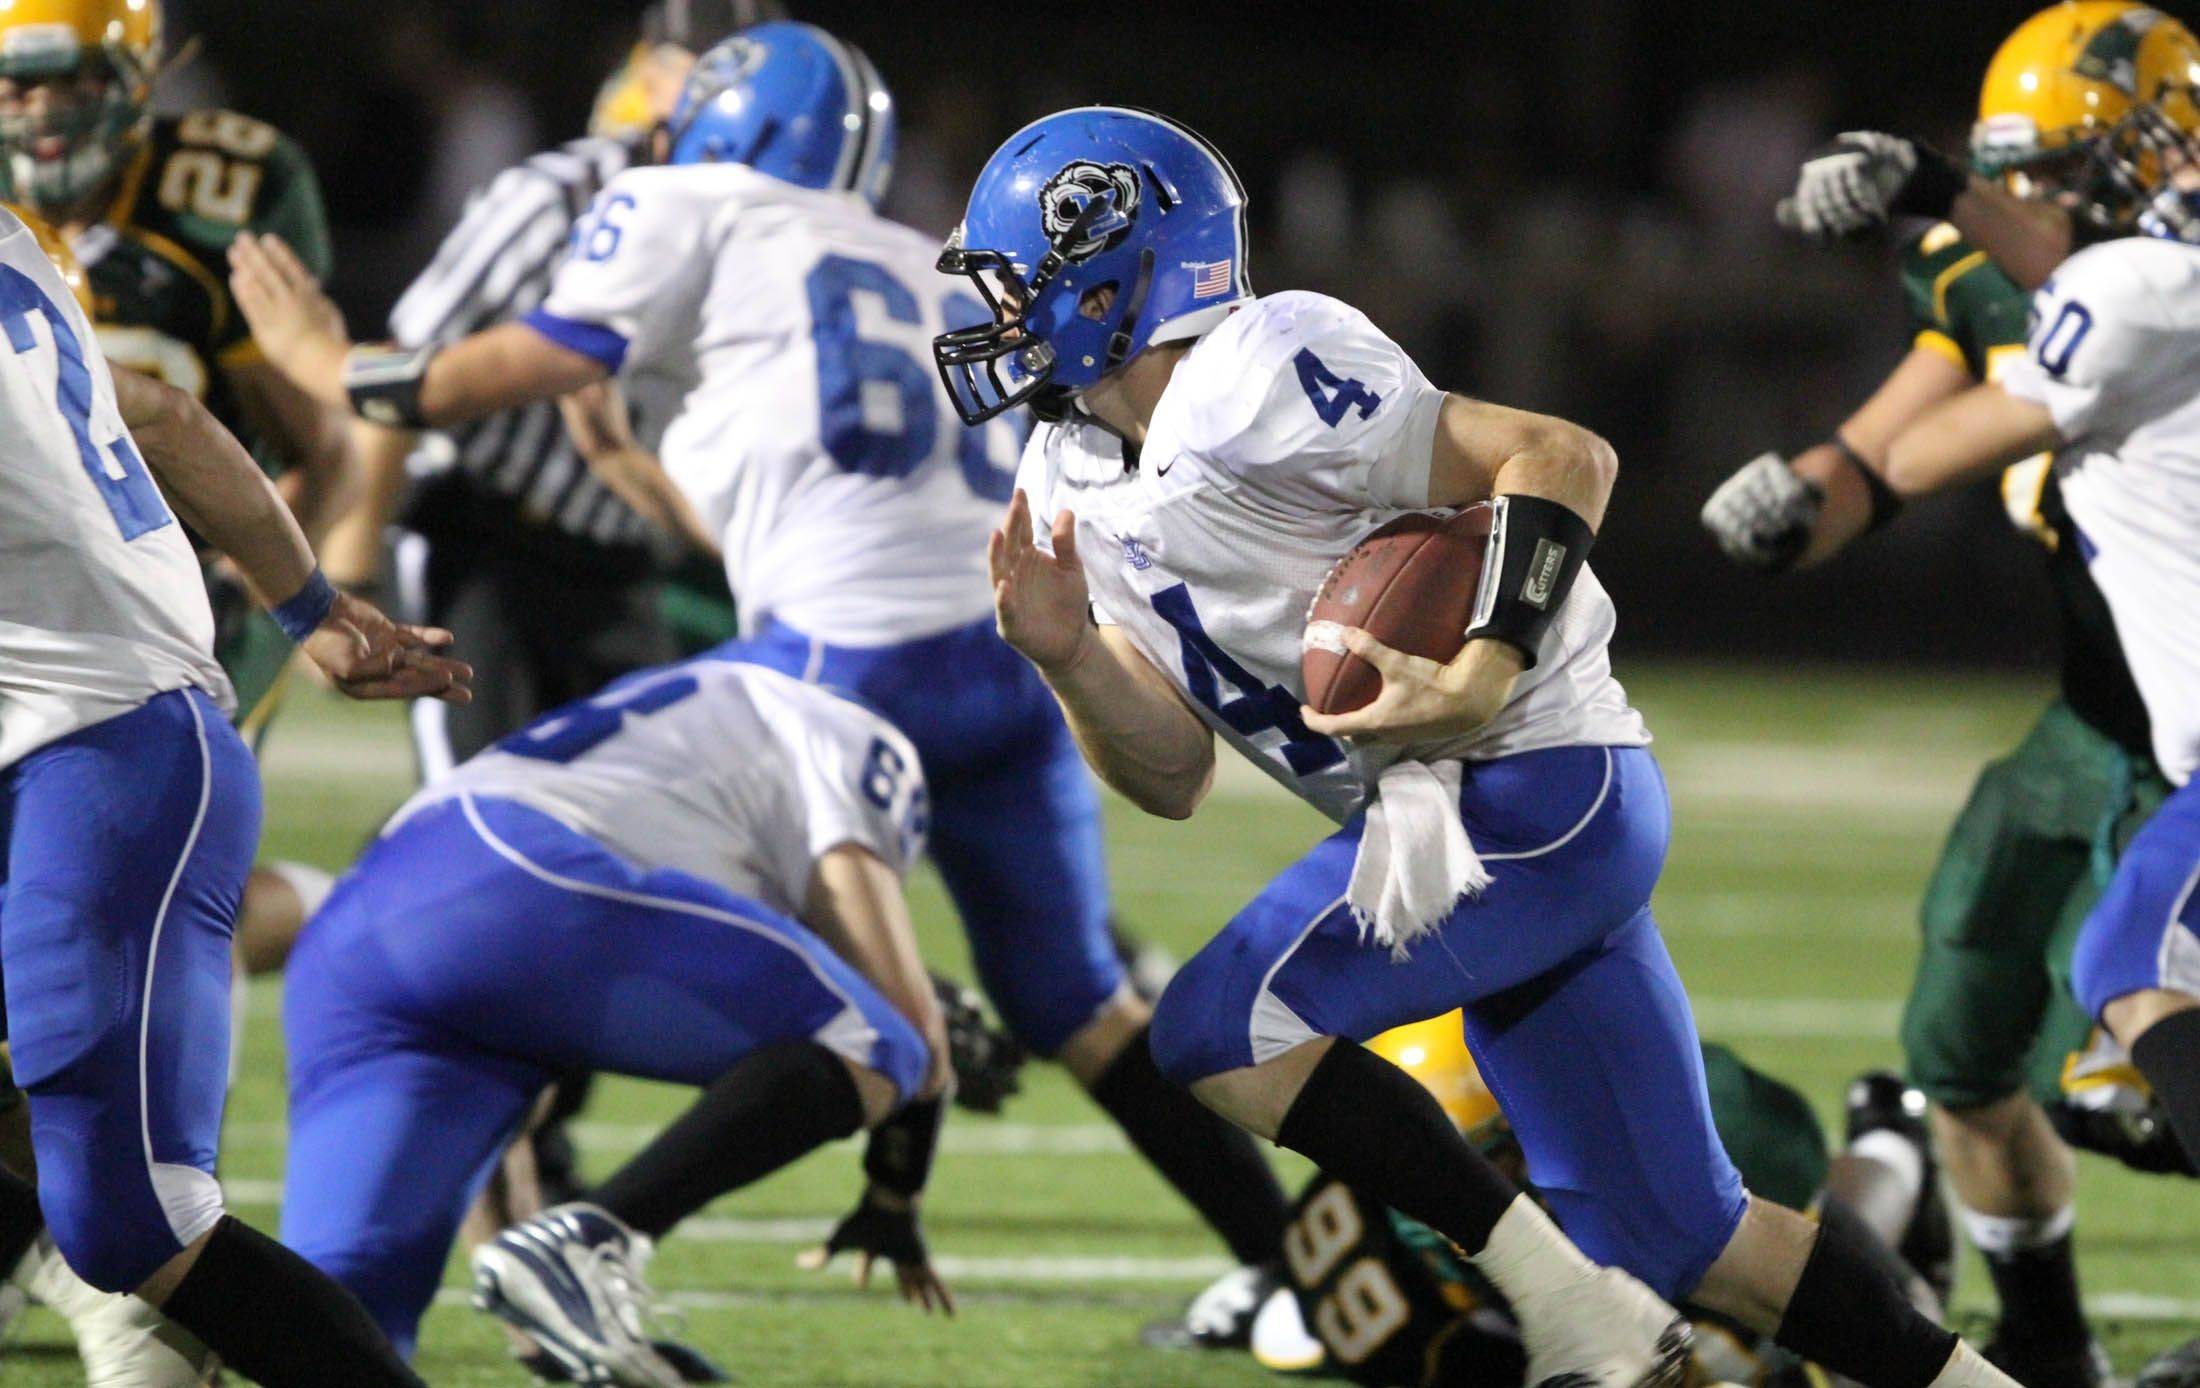 Lake Zurich's quarterback Zach Till runs the ball after faking a handoff at Stevenson on Thursday, October 6th.